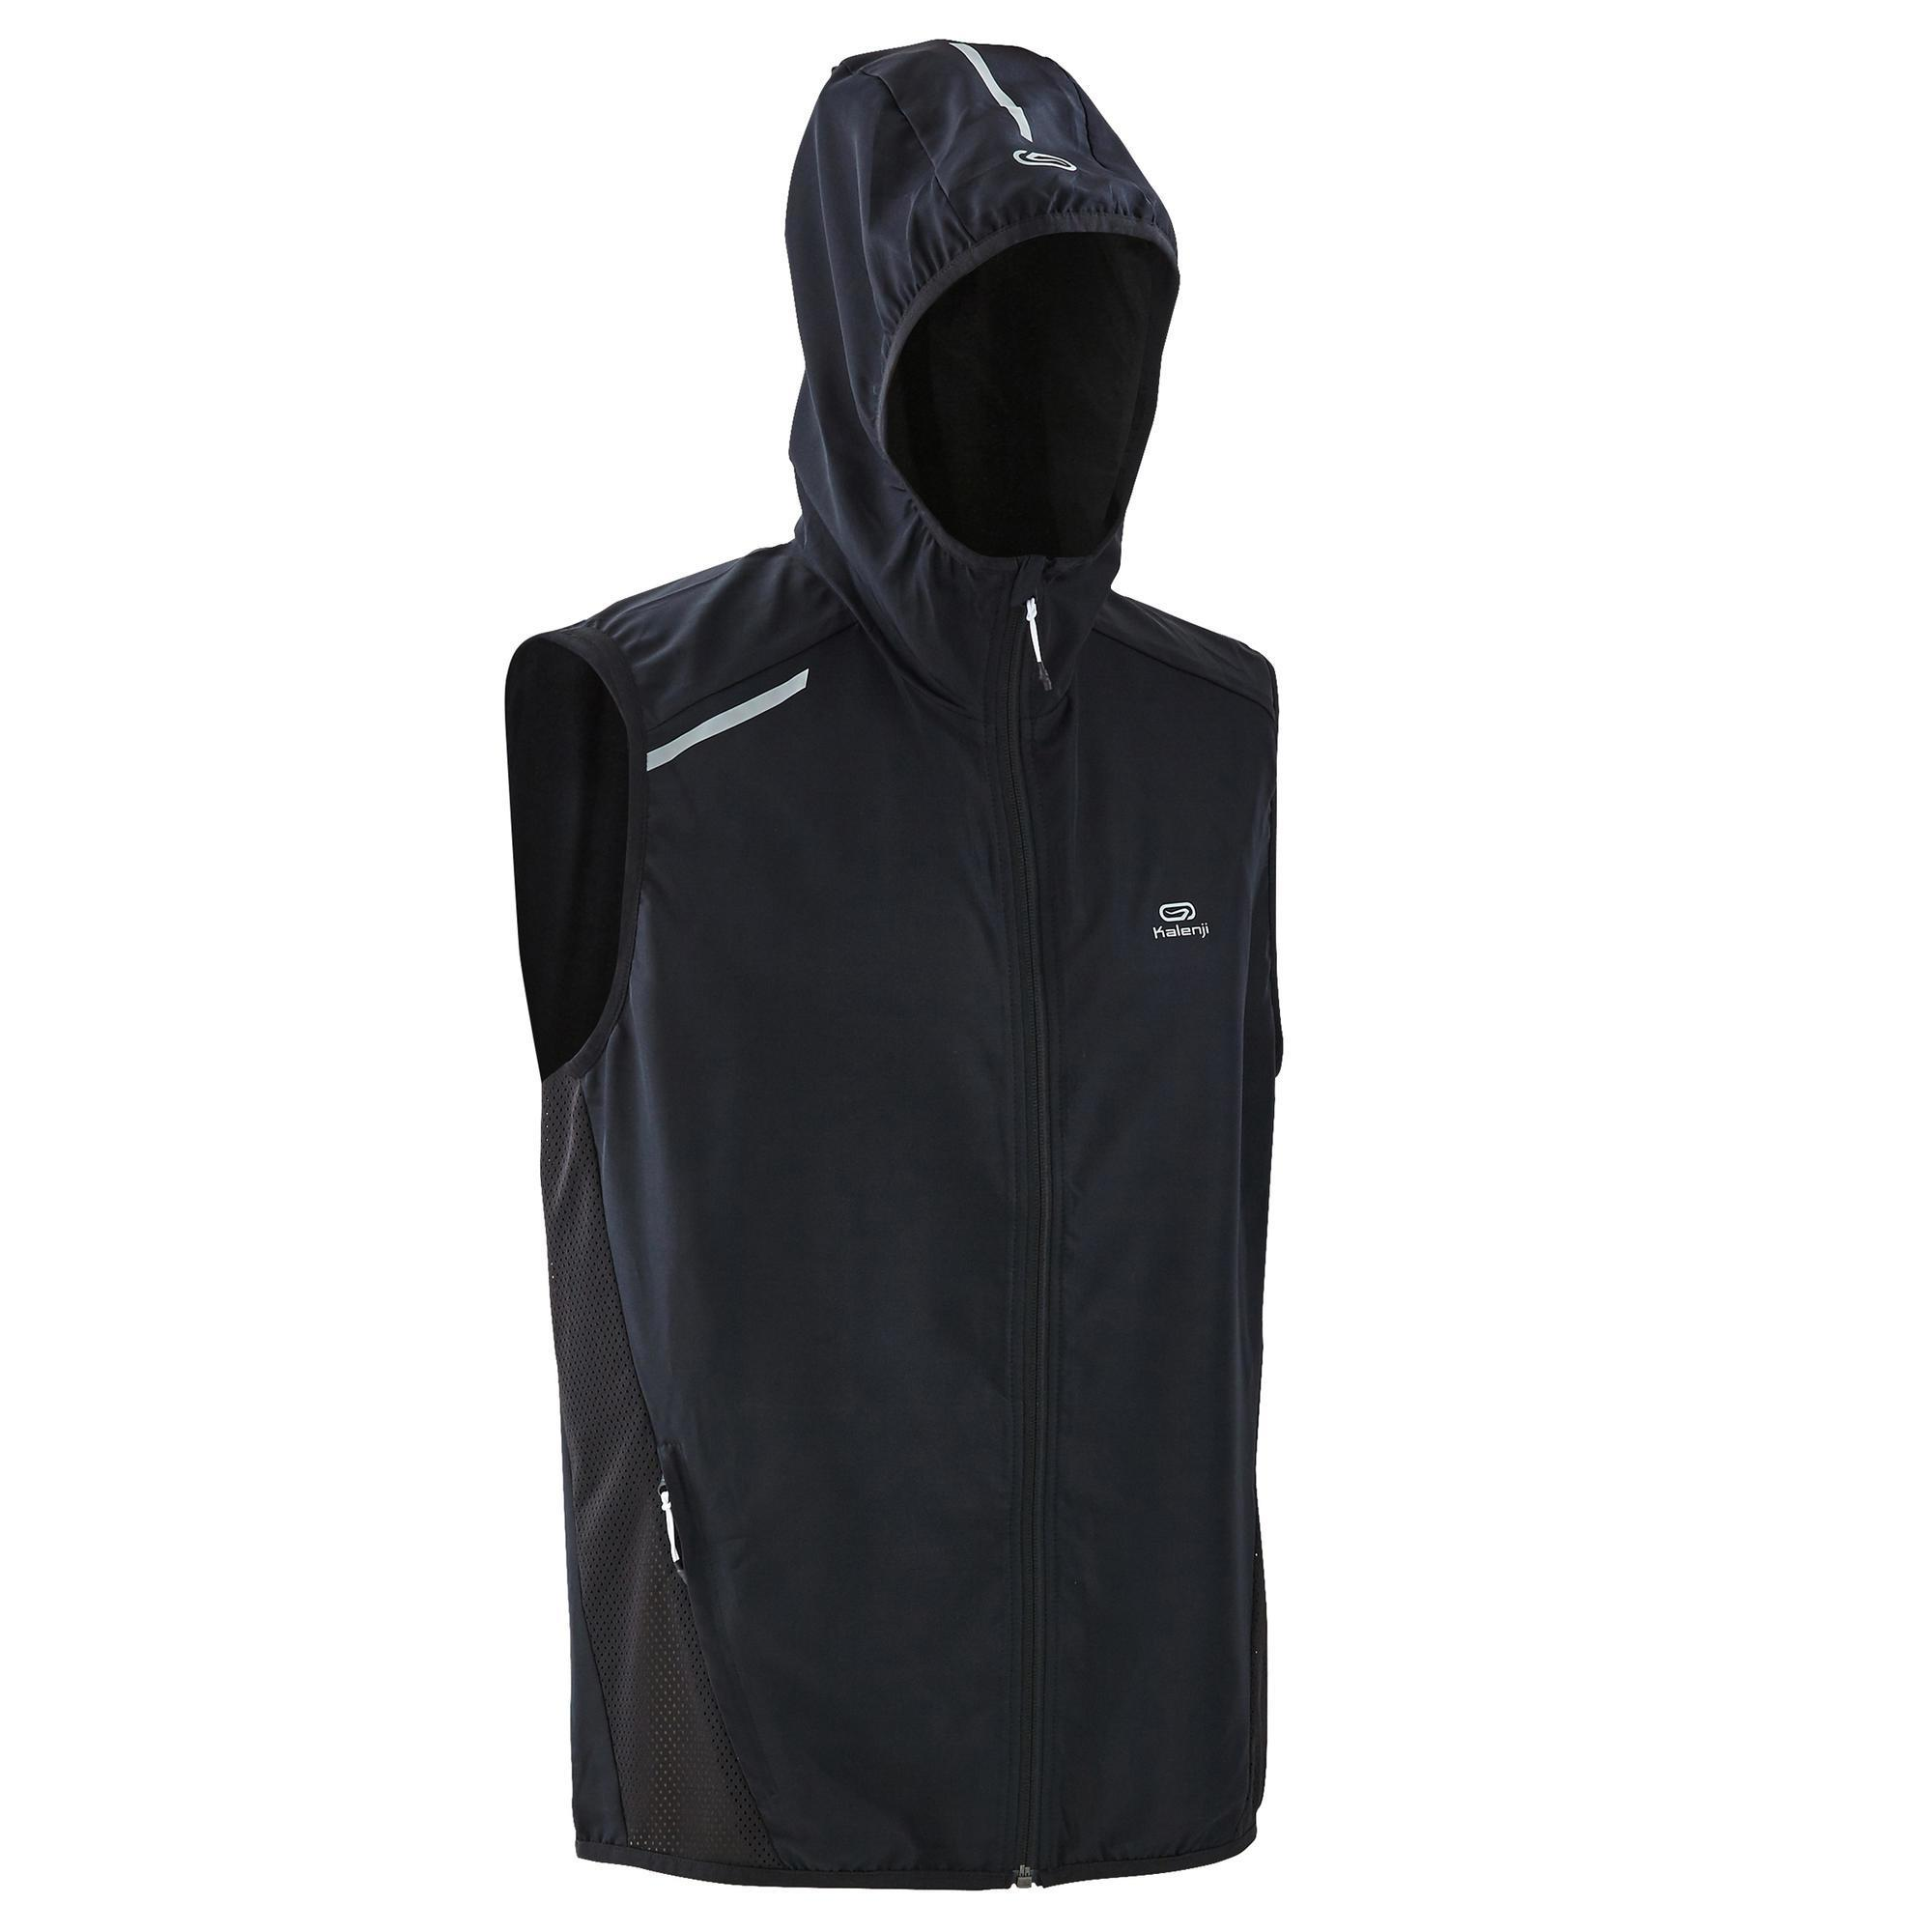 authorized site info for top quality VESTE SANS MANCHE RUNNING HOMME RUN WIND NOIR